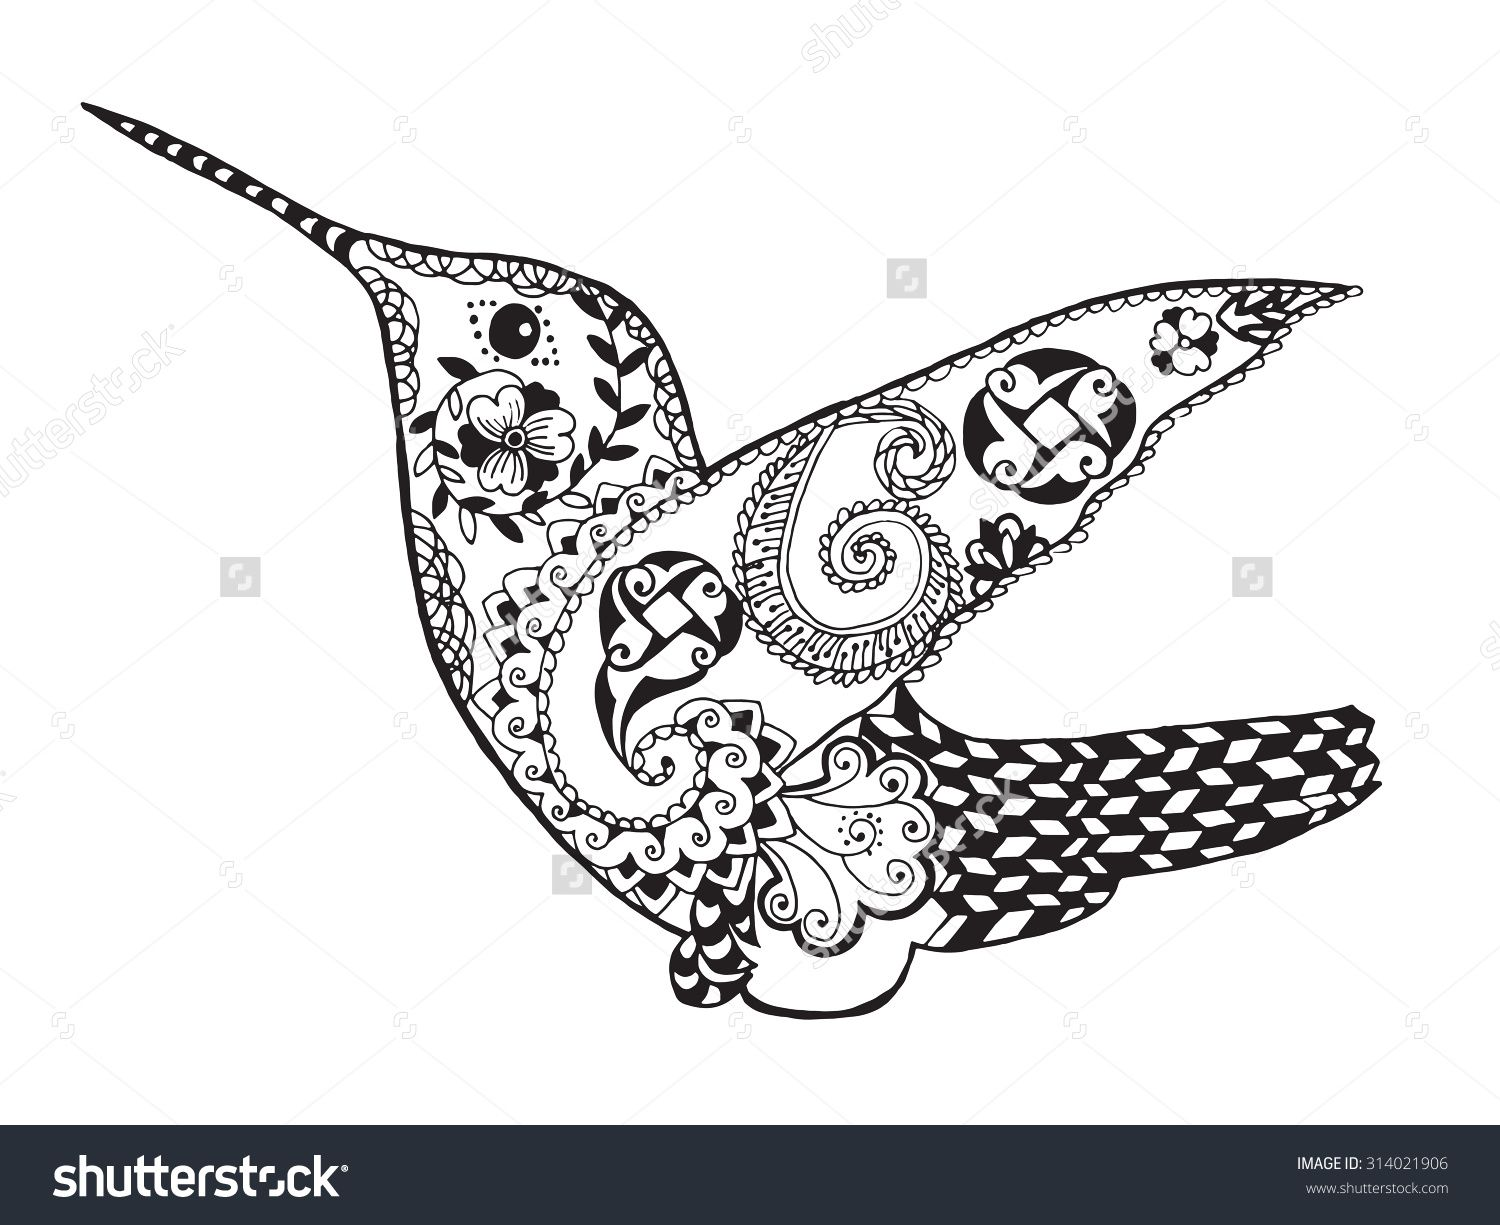 stock vector hummingbird black white hand drawn bird animal floral